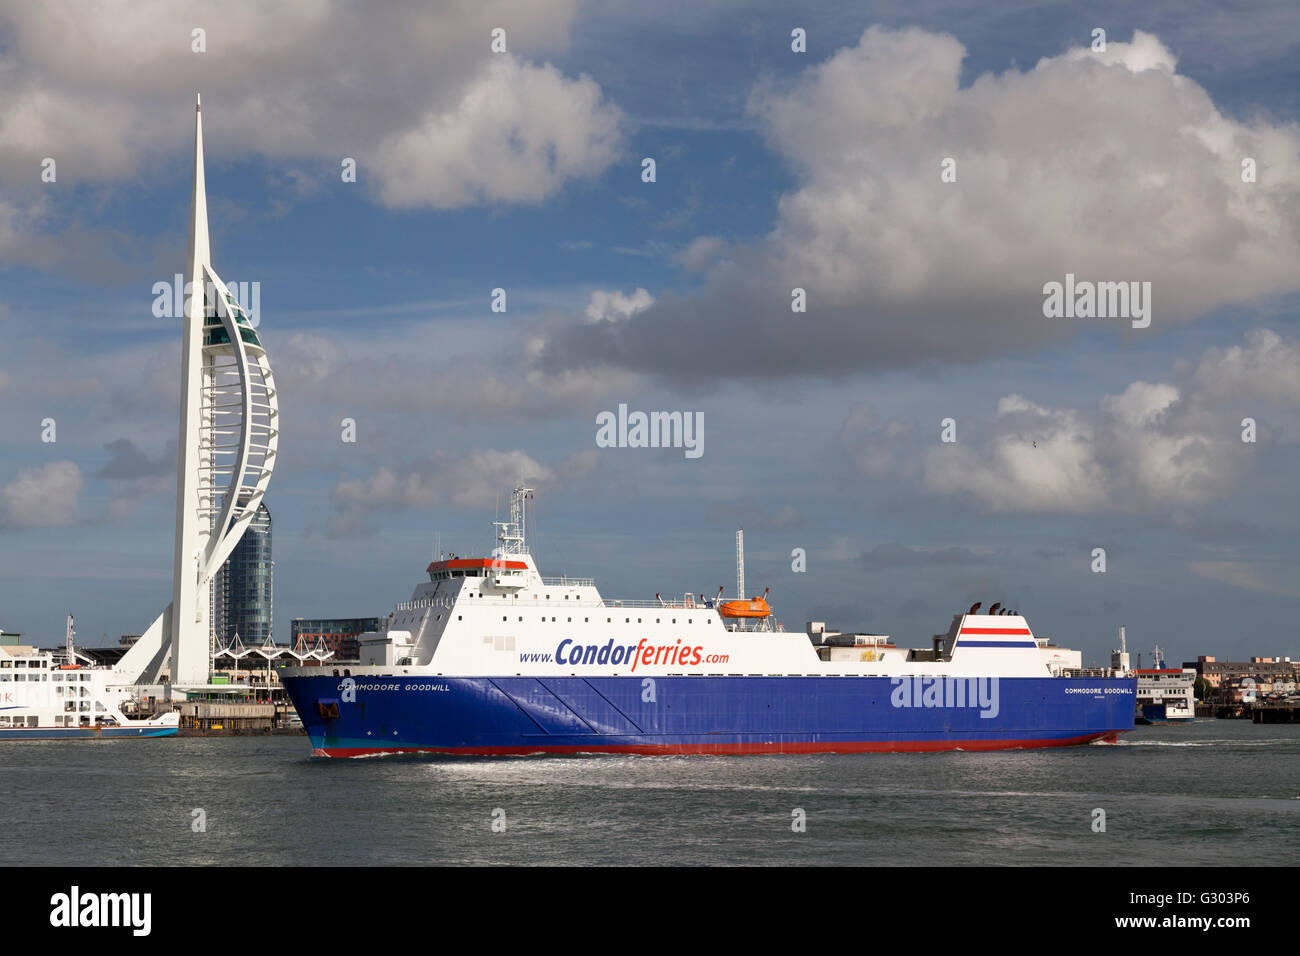 Condor Ferries 'Commodore Goodwill' entering Portsmouth Harbour past Spinnaker Tower, England, United Kingdom, - Stock Image